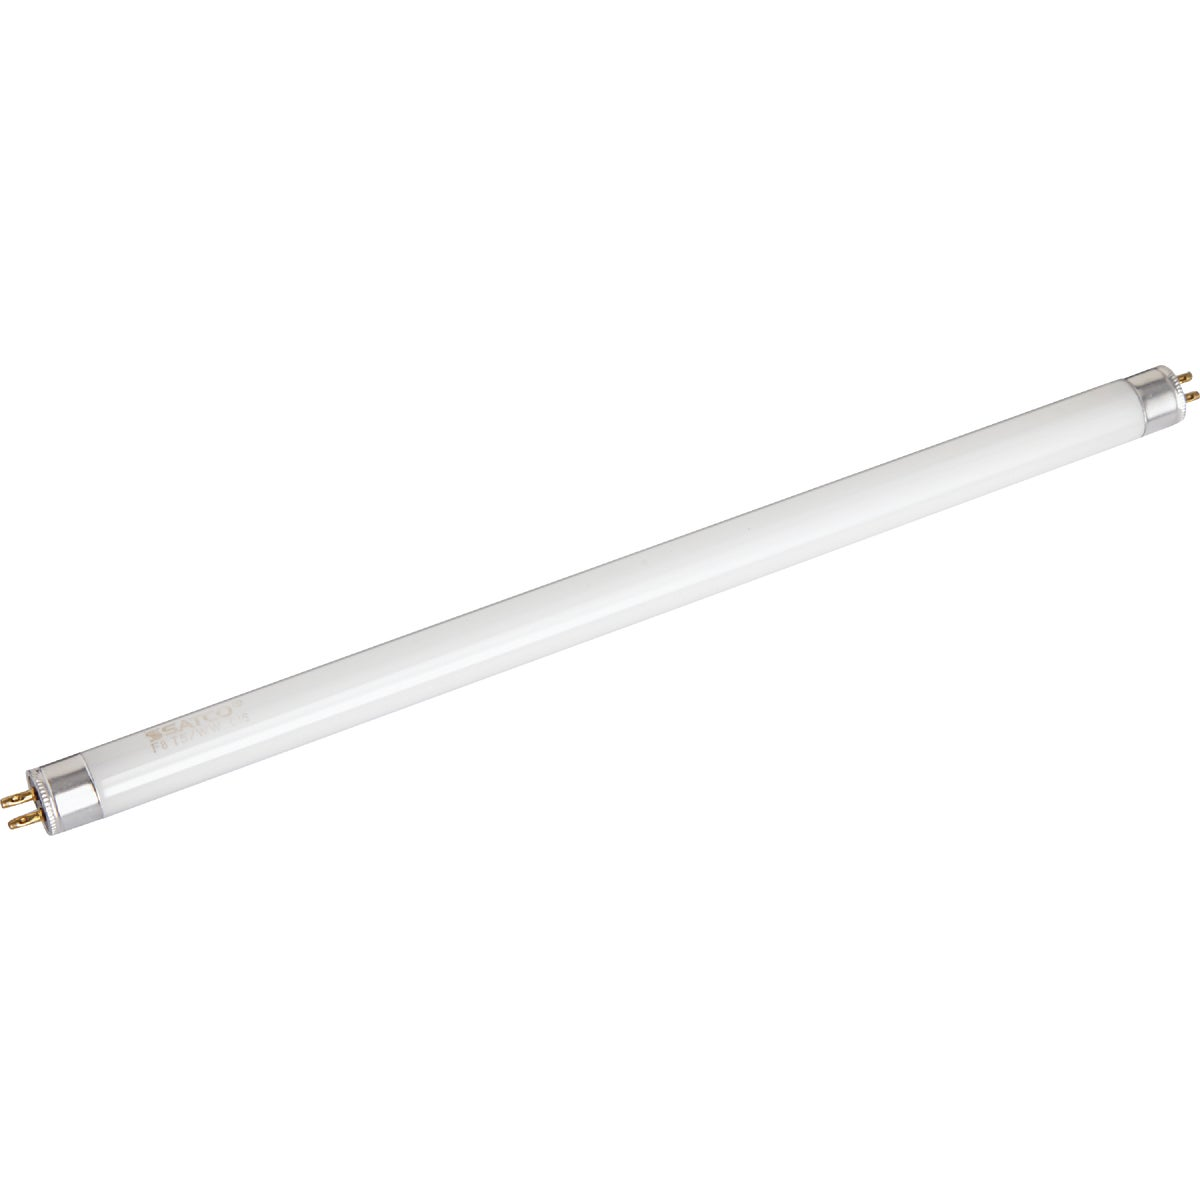 "8W 12"" T5WW FLUOR TUBE - 25425 F8T5/WW/CARD by G E Lighting"